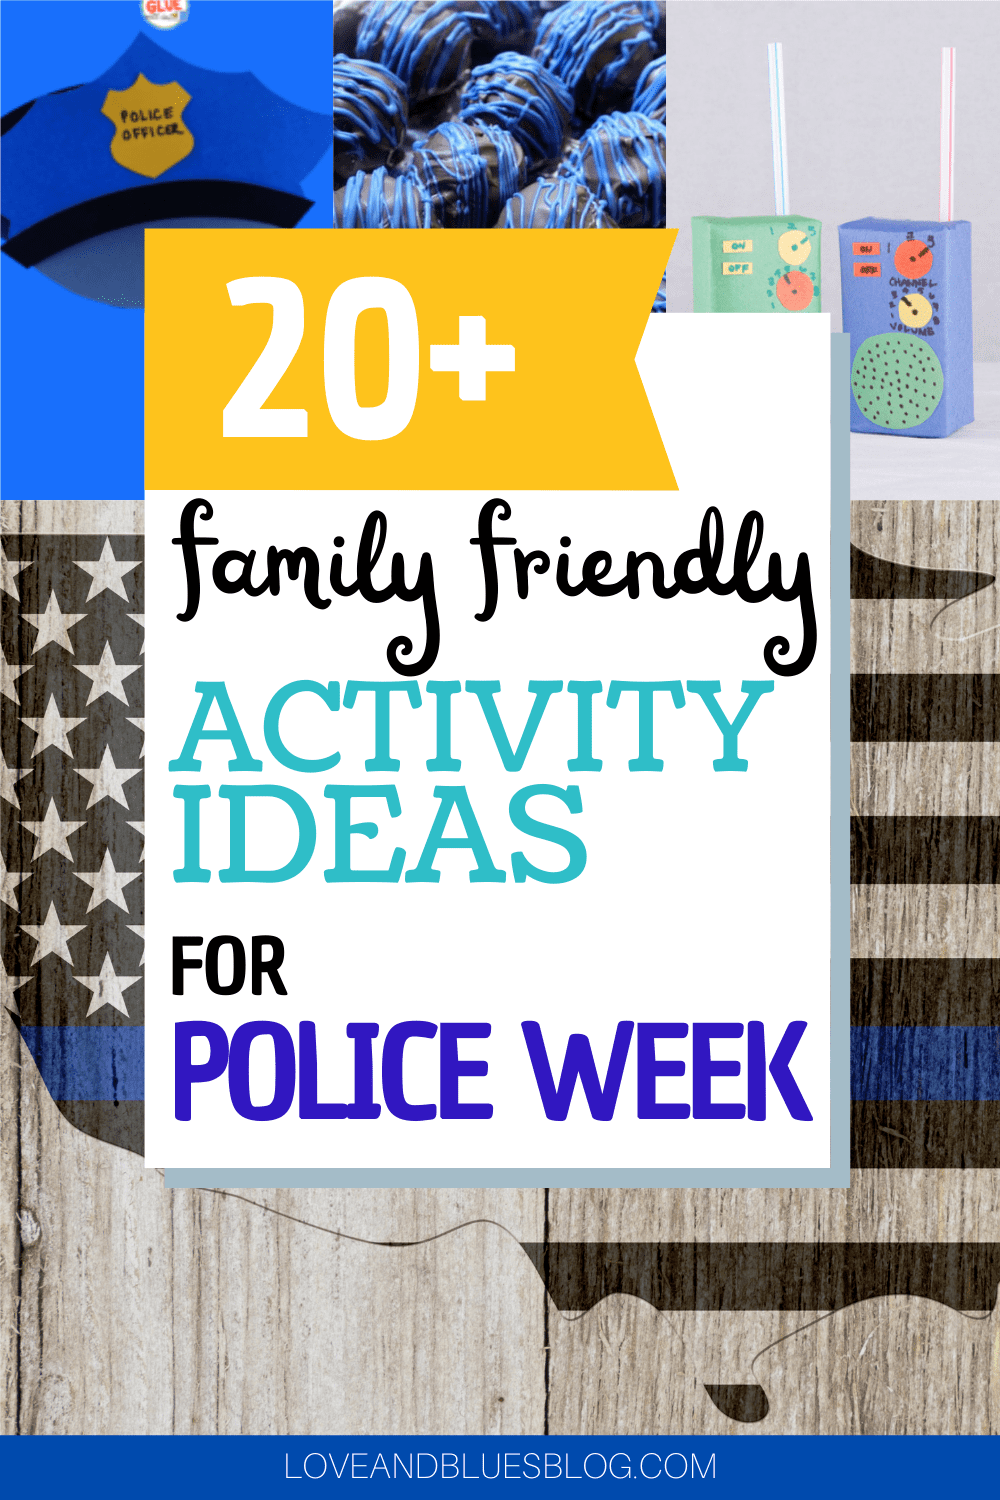 Such fun ideas to observe national police week as a family!